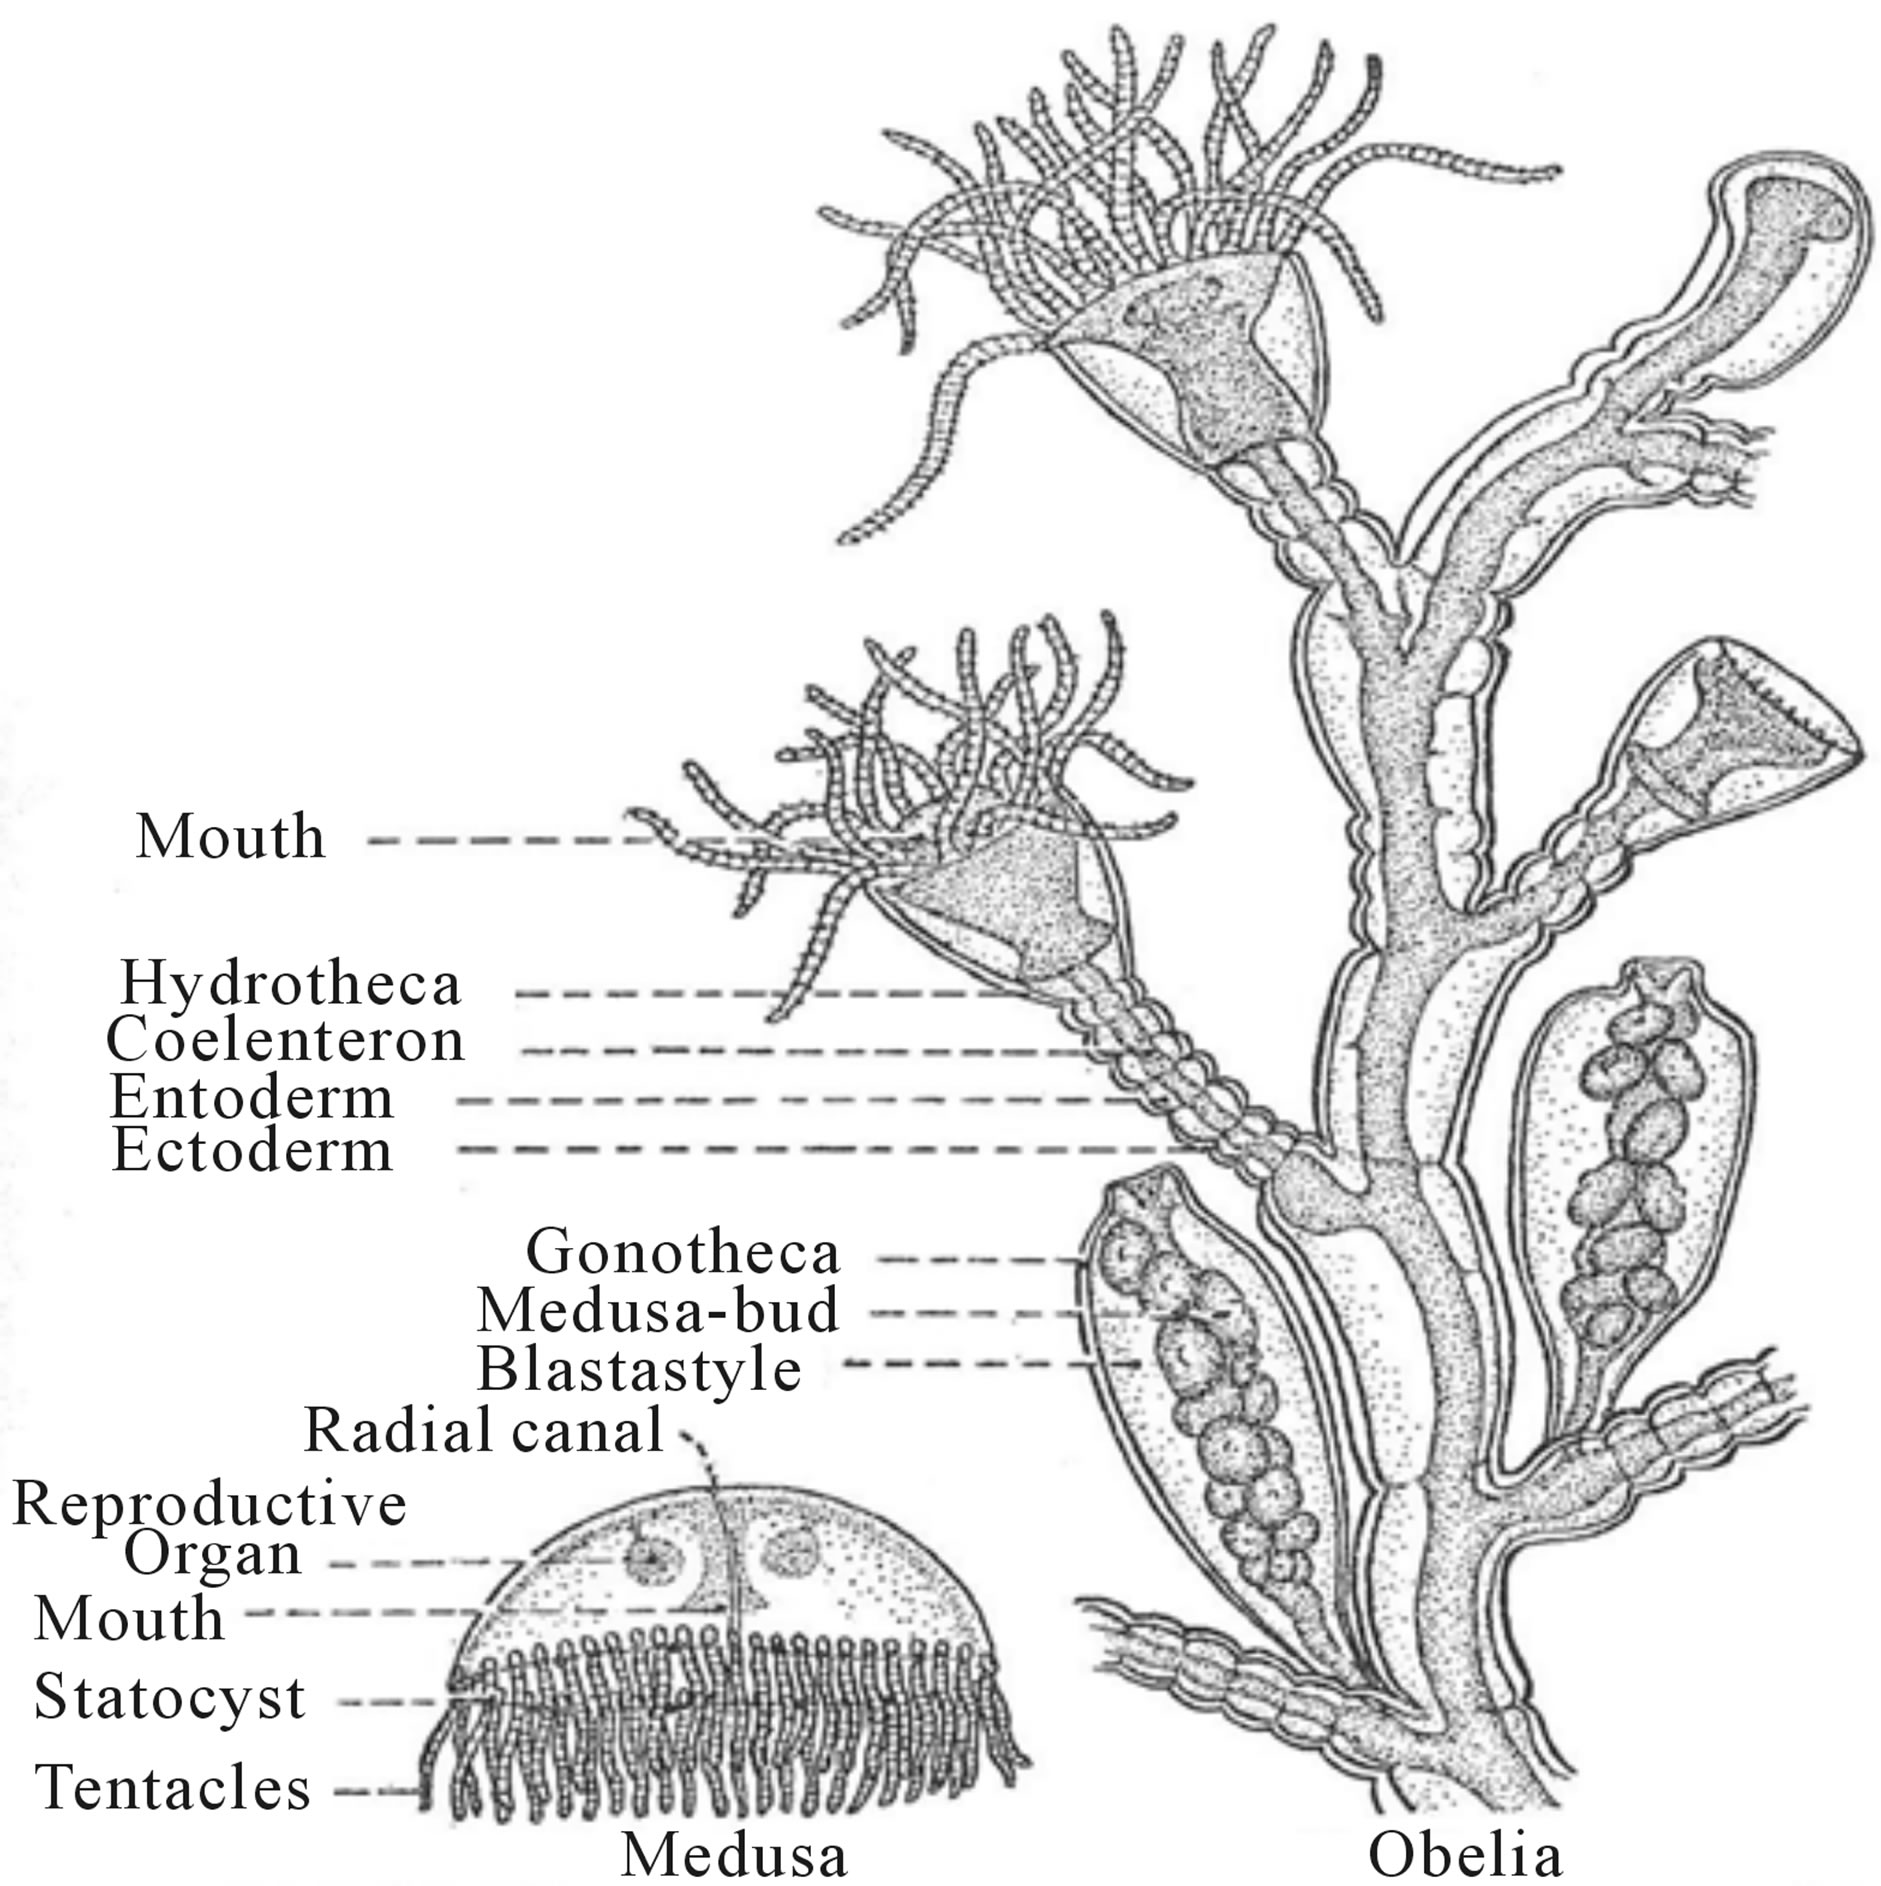 sea anemone diagram labeled